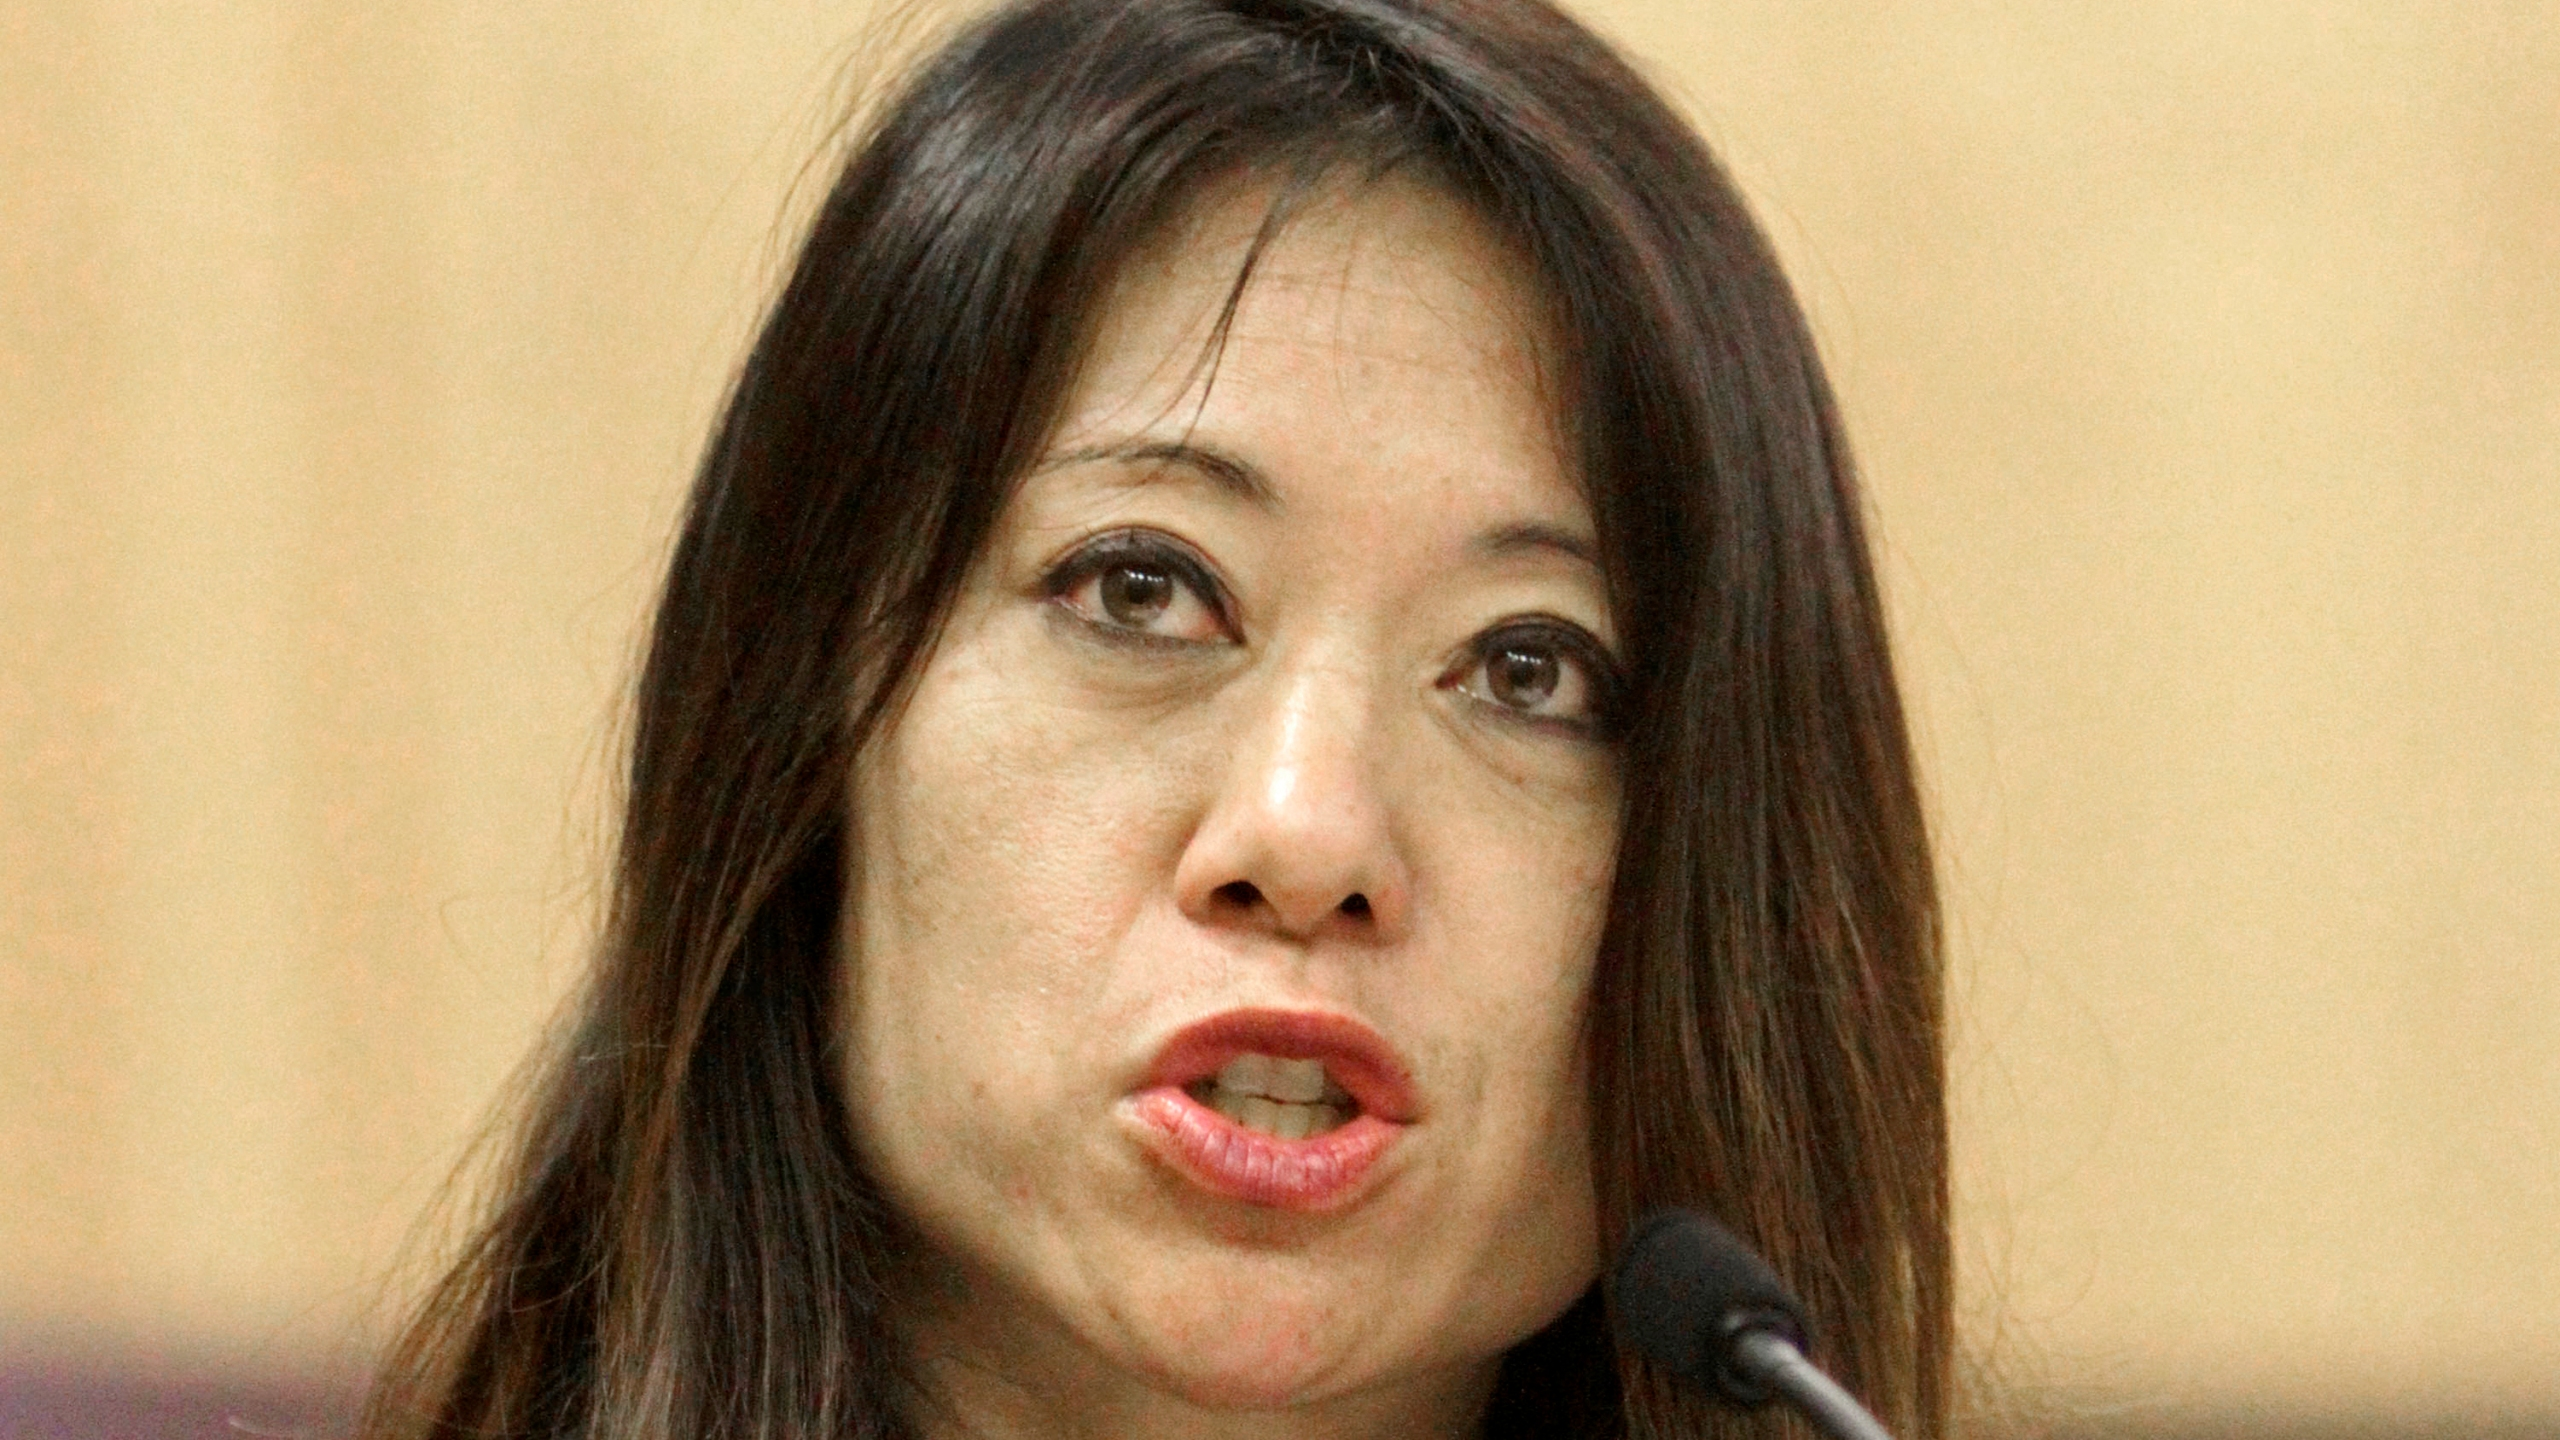 Then-Assemblywoman Fiona Ma speaks at a hearing at the Capitol in Sacramento on June 14, 2011. She is now California's treasurer. (Rich Pedroncelli / Associated Press)